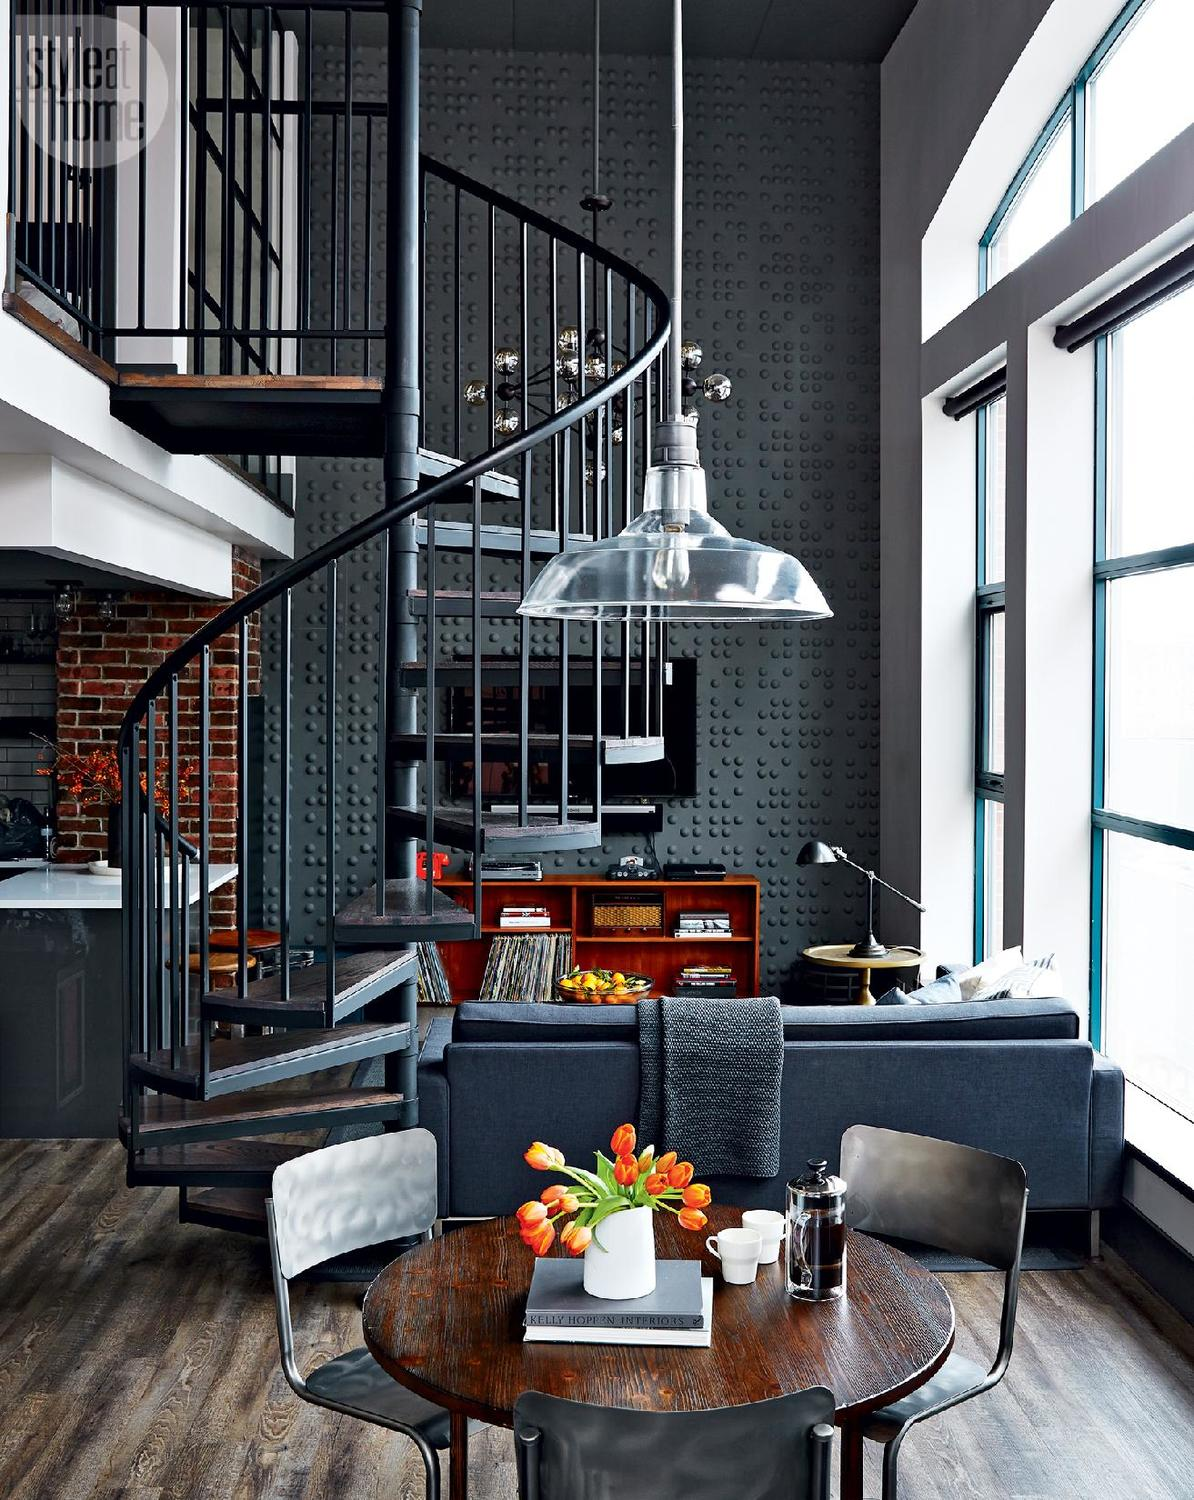 Un loft industriel au look vintage toronto planete deco a homes world - Deco loft industriele ...